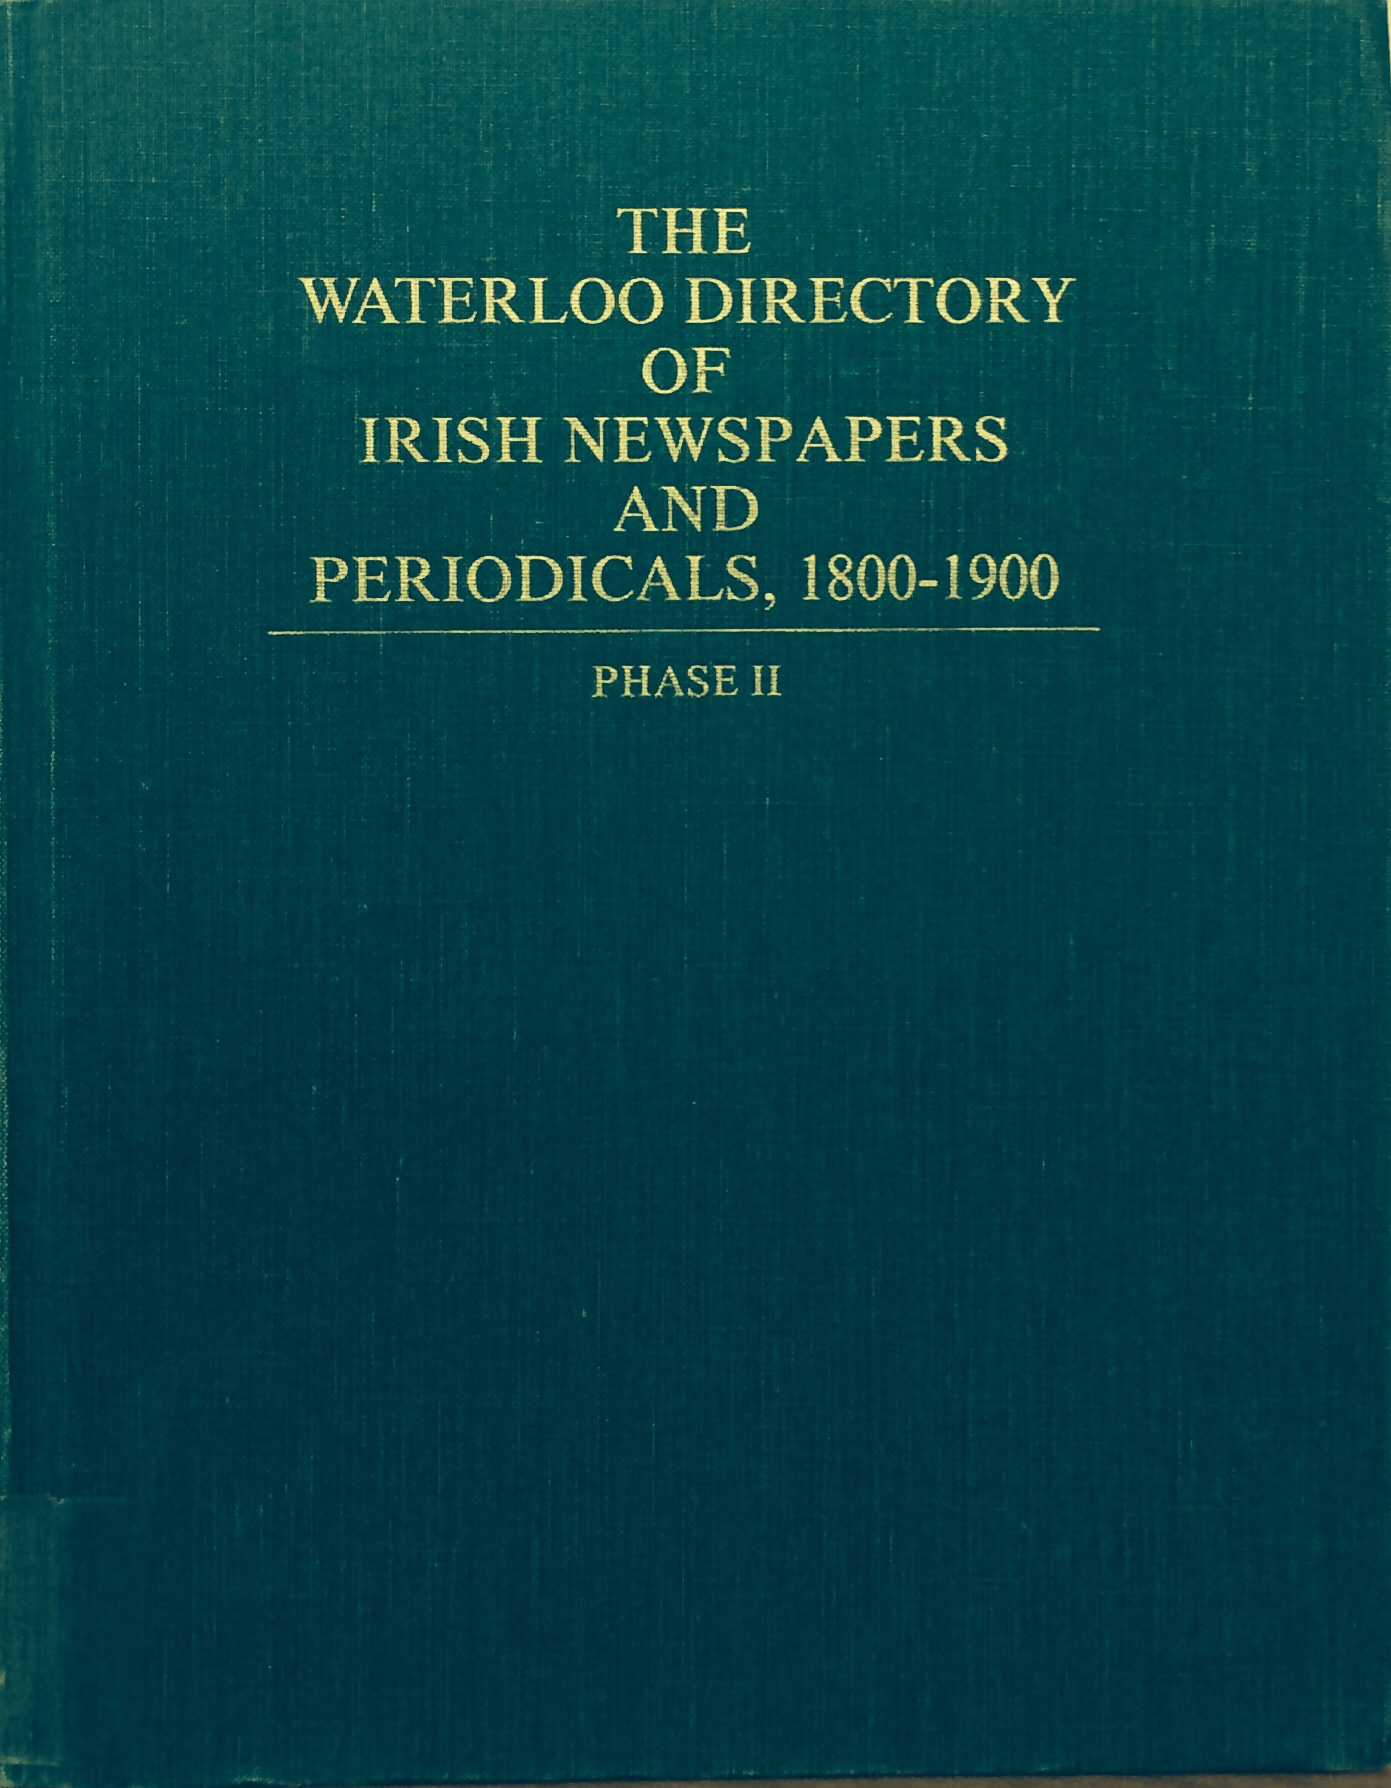 Cover to Waterloo Directory of Irish Newspapers & Periodicals, 1800-1900